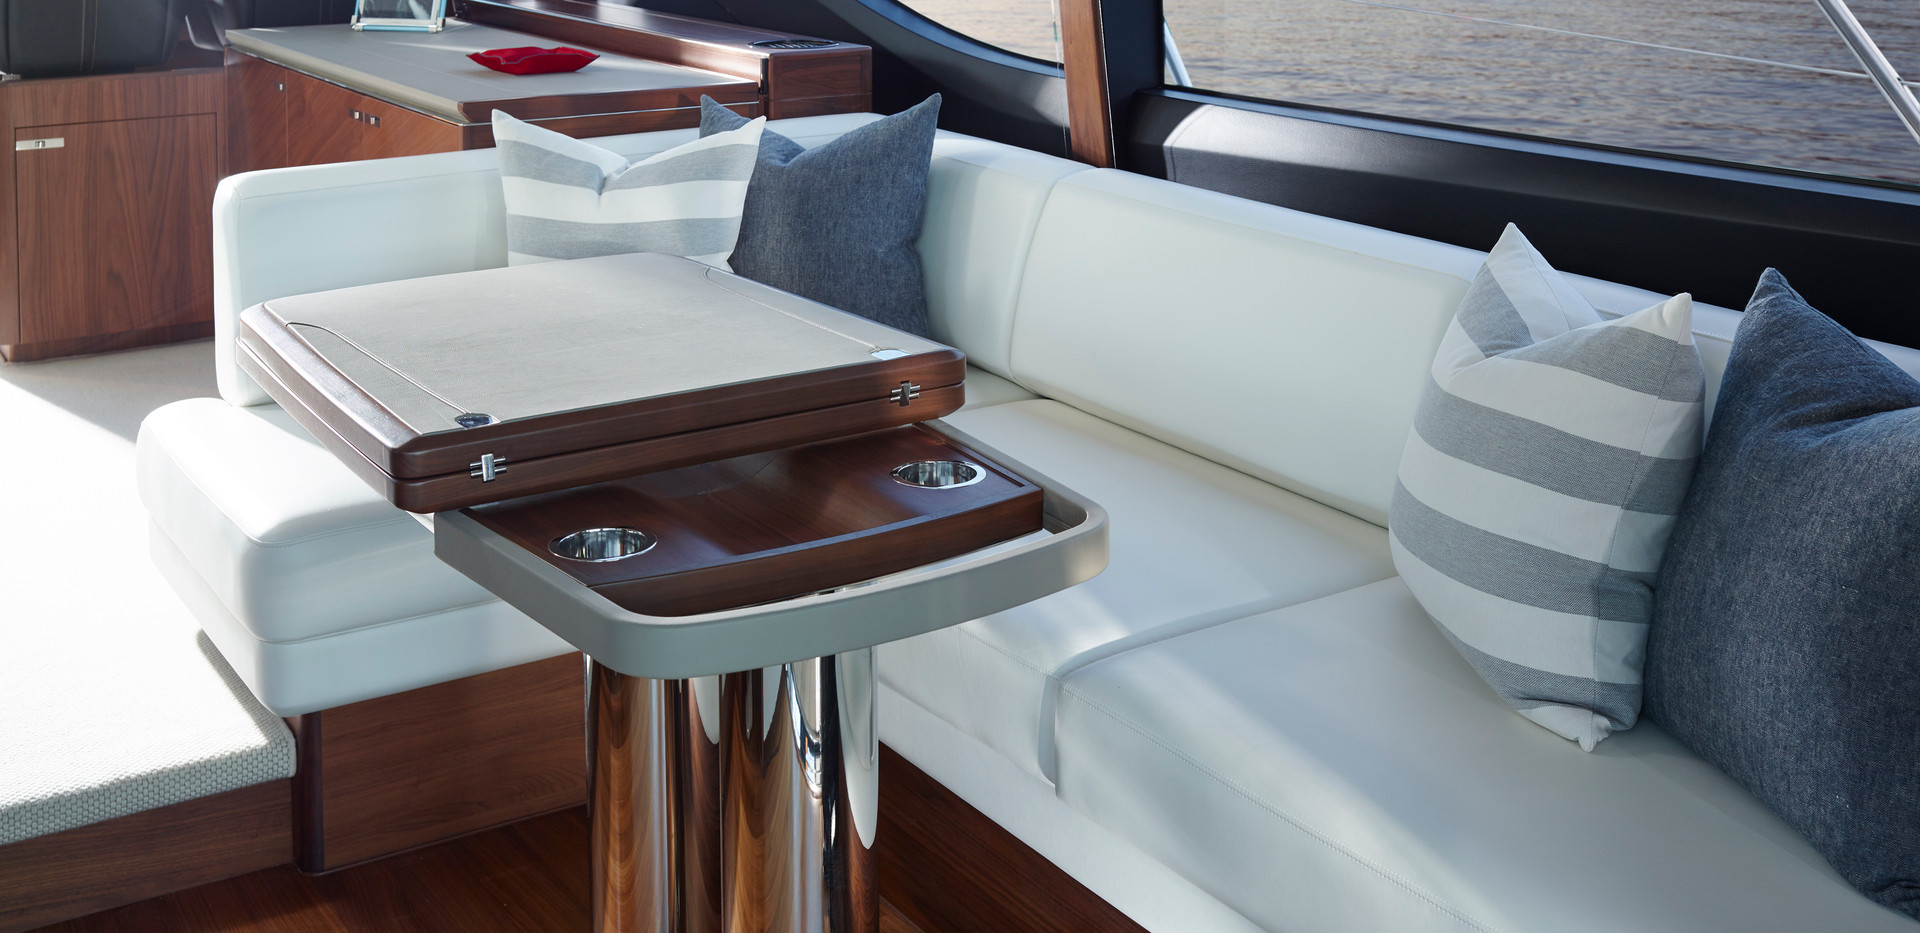 s65-interior-dining-area-table-folded-am